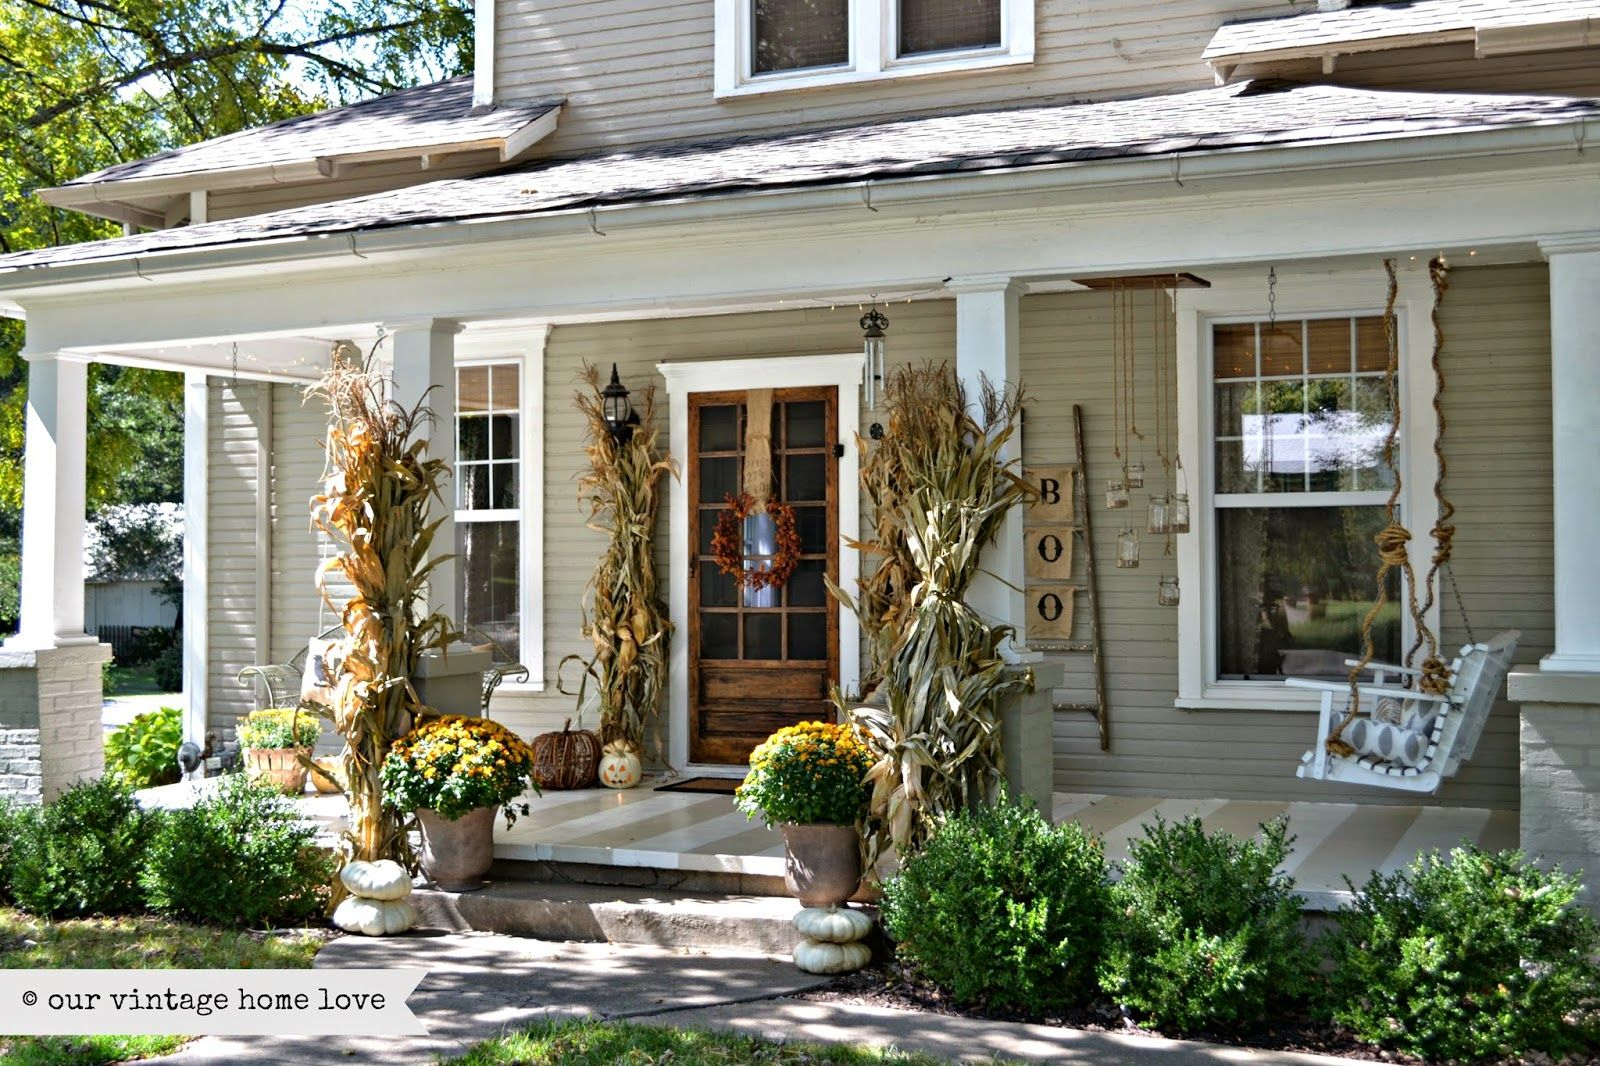 Fall Porch Decor Ideas Best Autumn Porch Decorations - Front porch makeover ideas